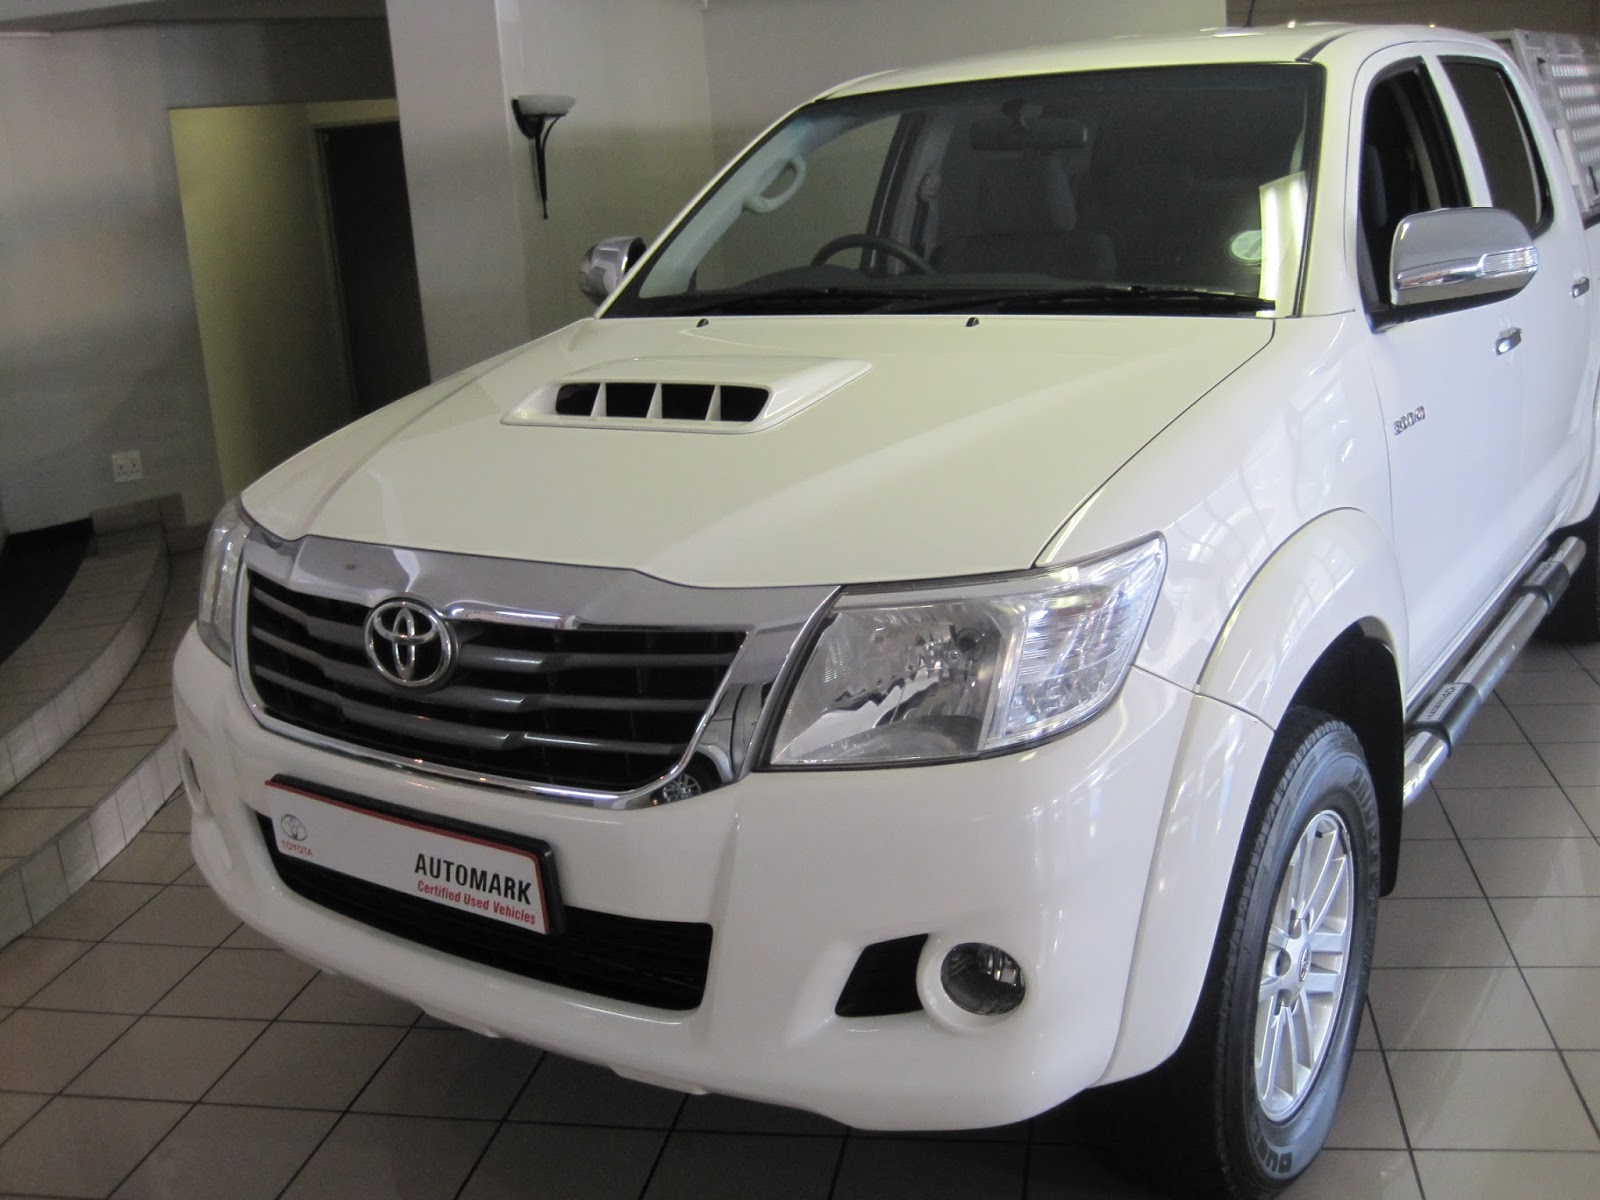 gumtree olx second hand vehicles cars for sale bakkies in cape town 2013 toyota